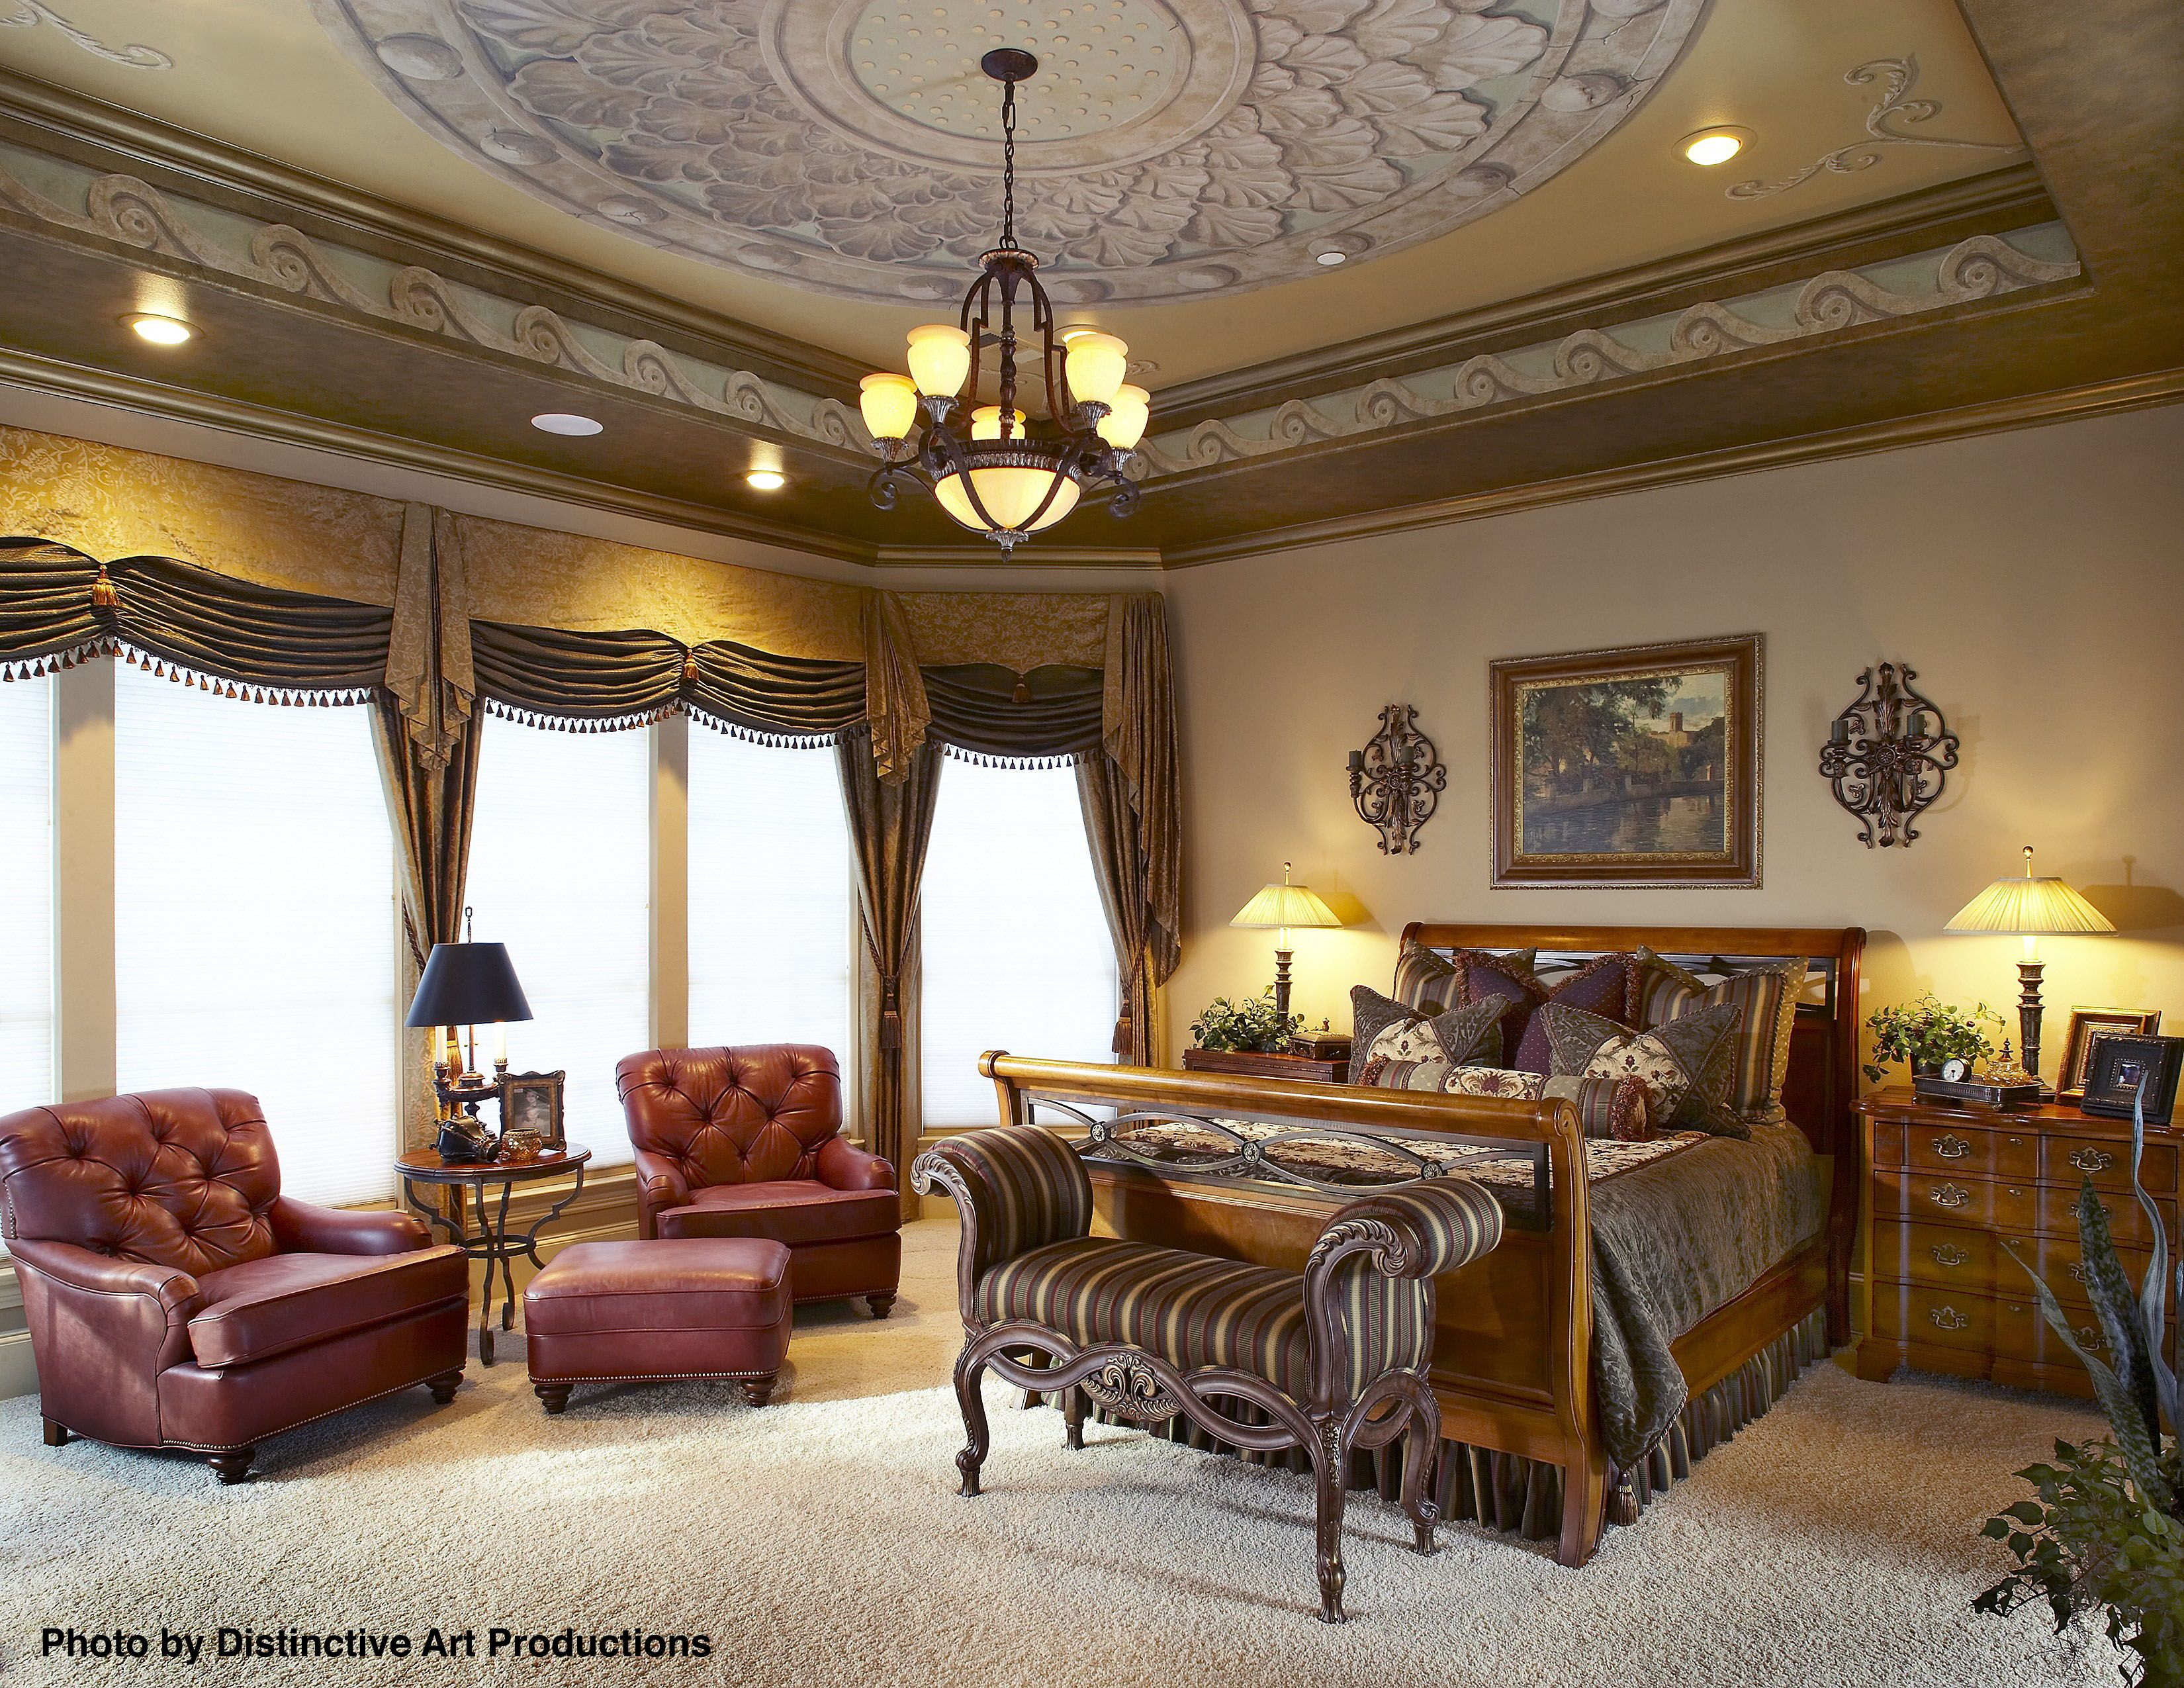 Big traditional bedroom with  fabric valence window covering neo classical designs puffy carpet throughout and floral duvet also interior design costs ideas master rh pinterest